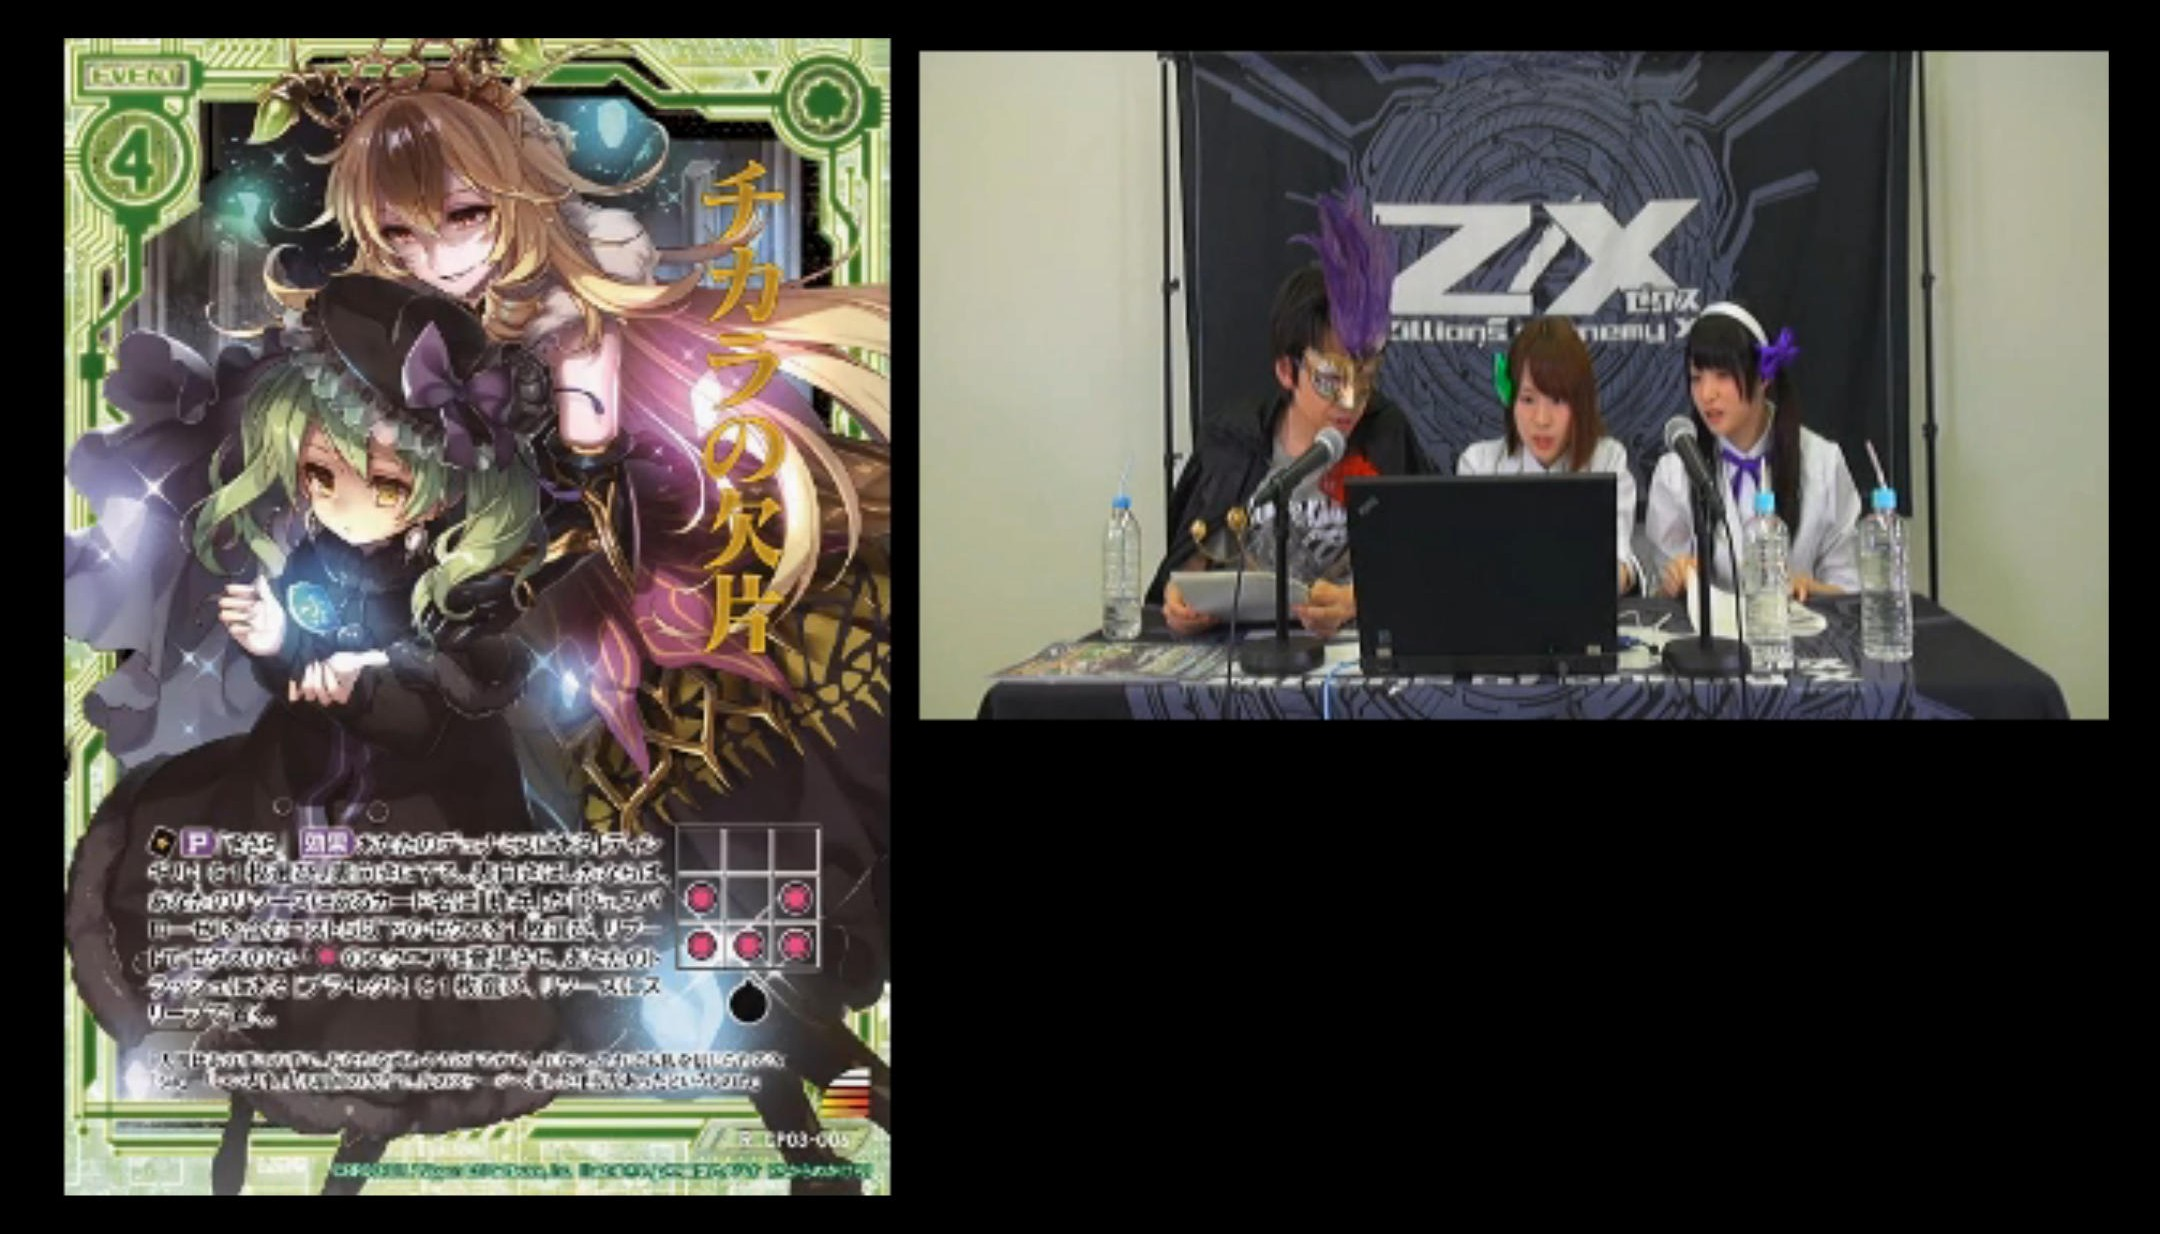 zx-ignition-broadcast-170531-024.jpg